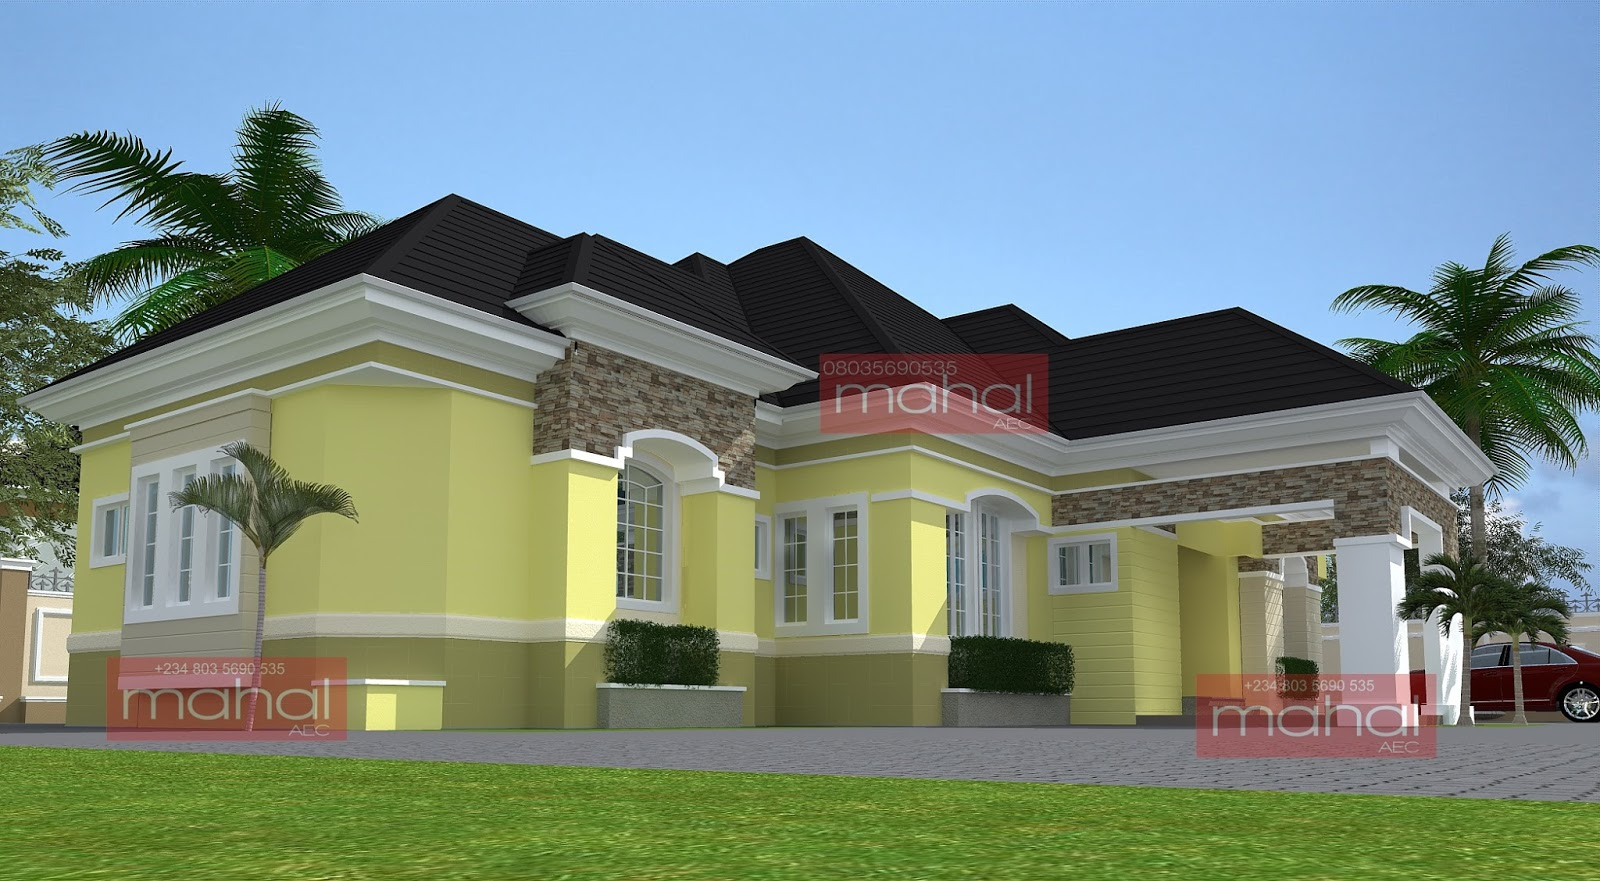 Contemporary nigerian residential architecture july 2013 for Nigerian home designs photos